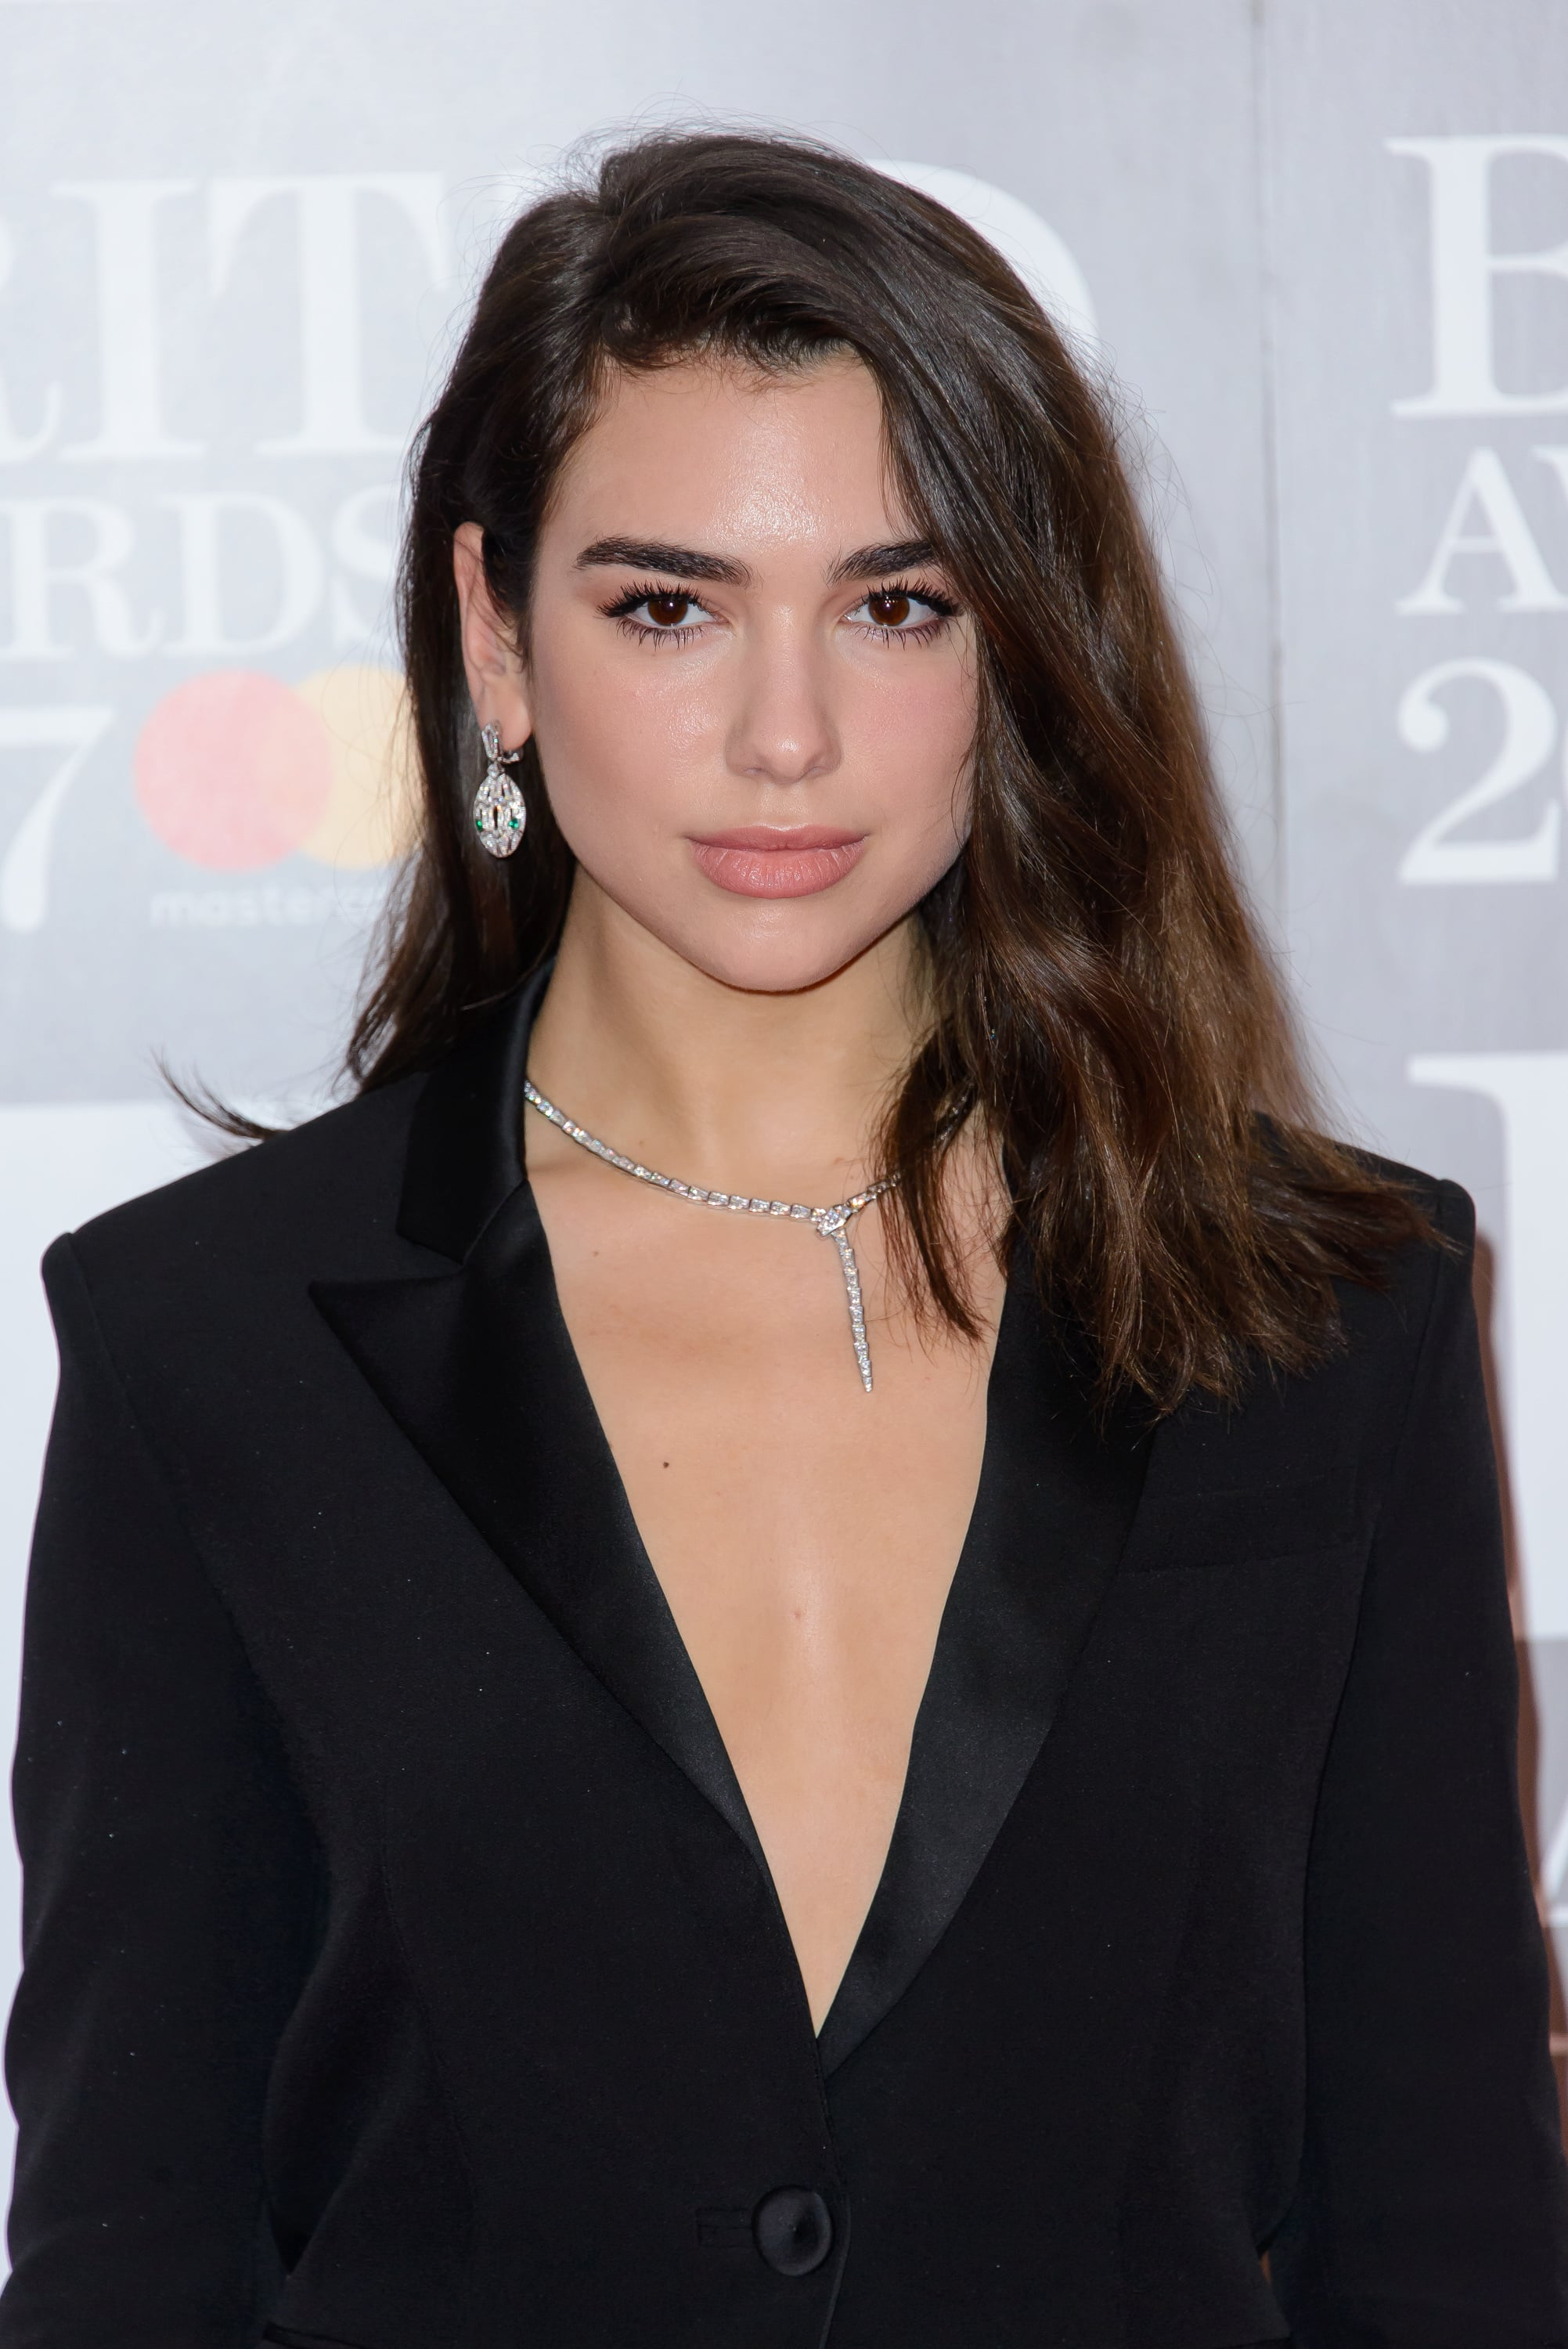 dua lipa - photo #39